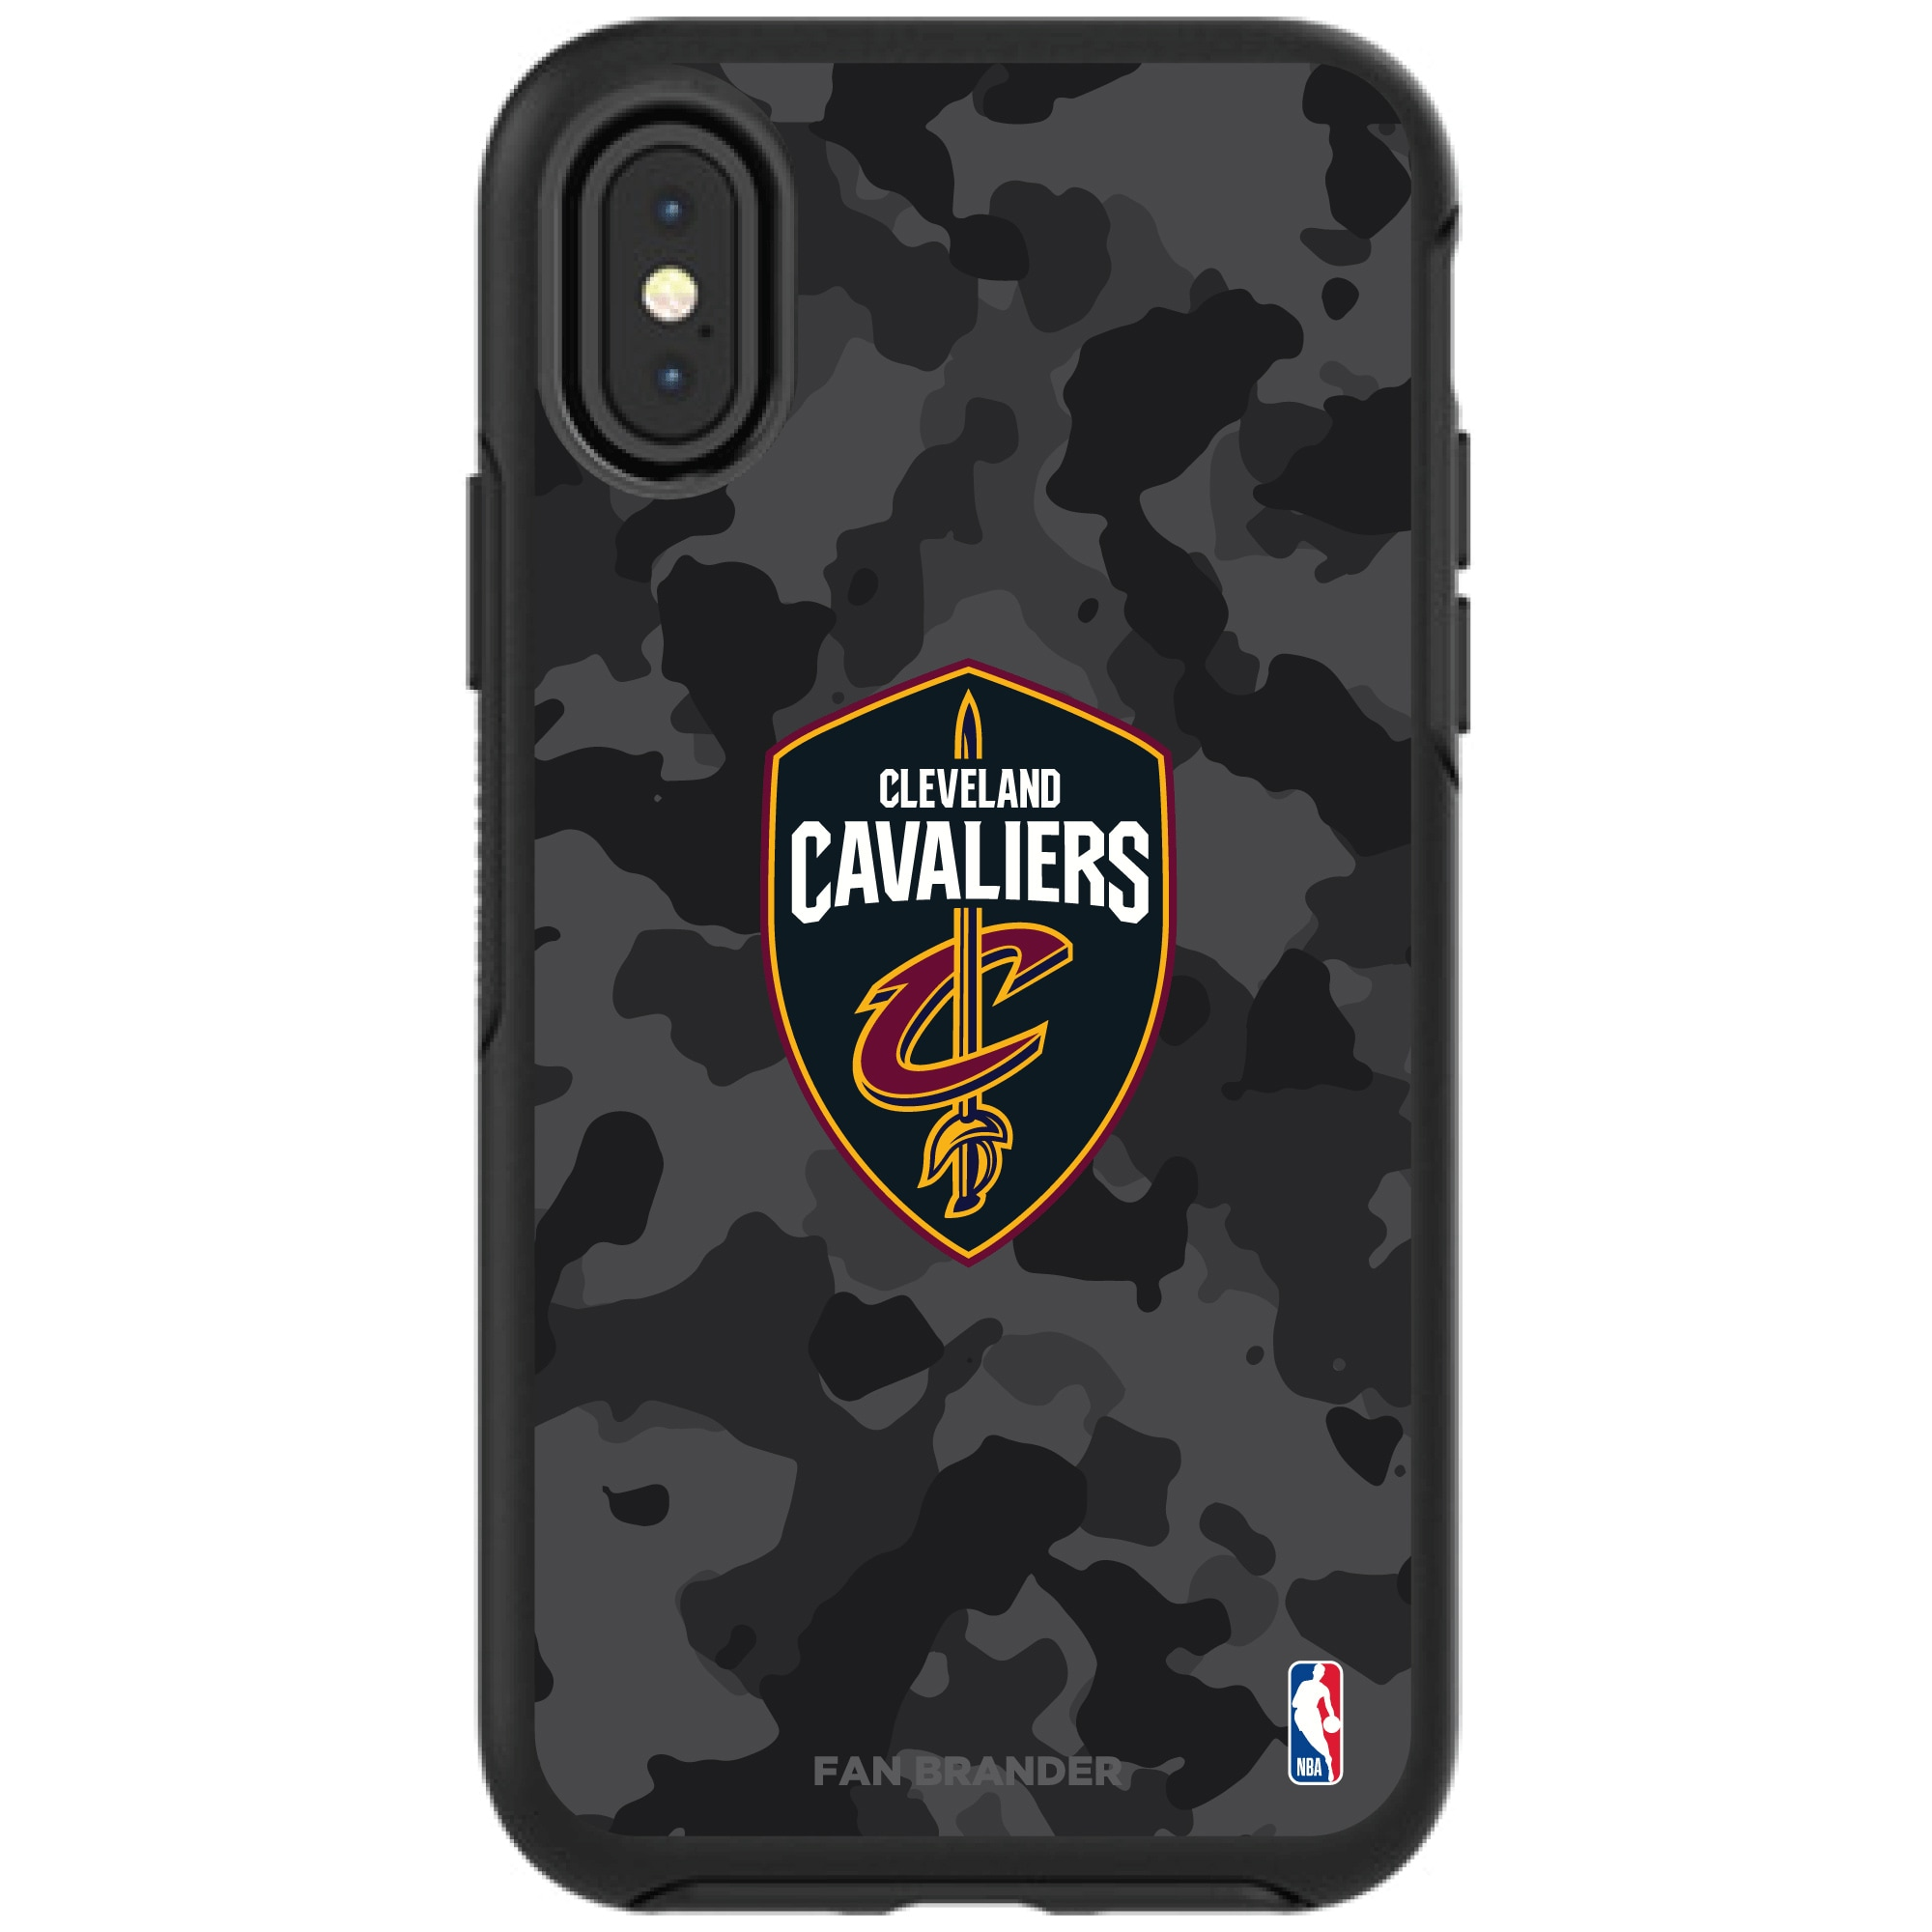 Cleveland Cavaliers OtterBox Urban Camo iPhone Case